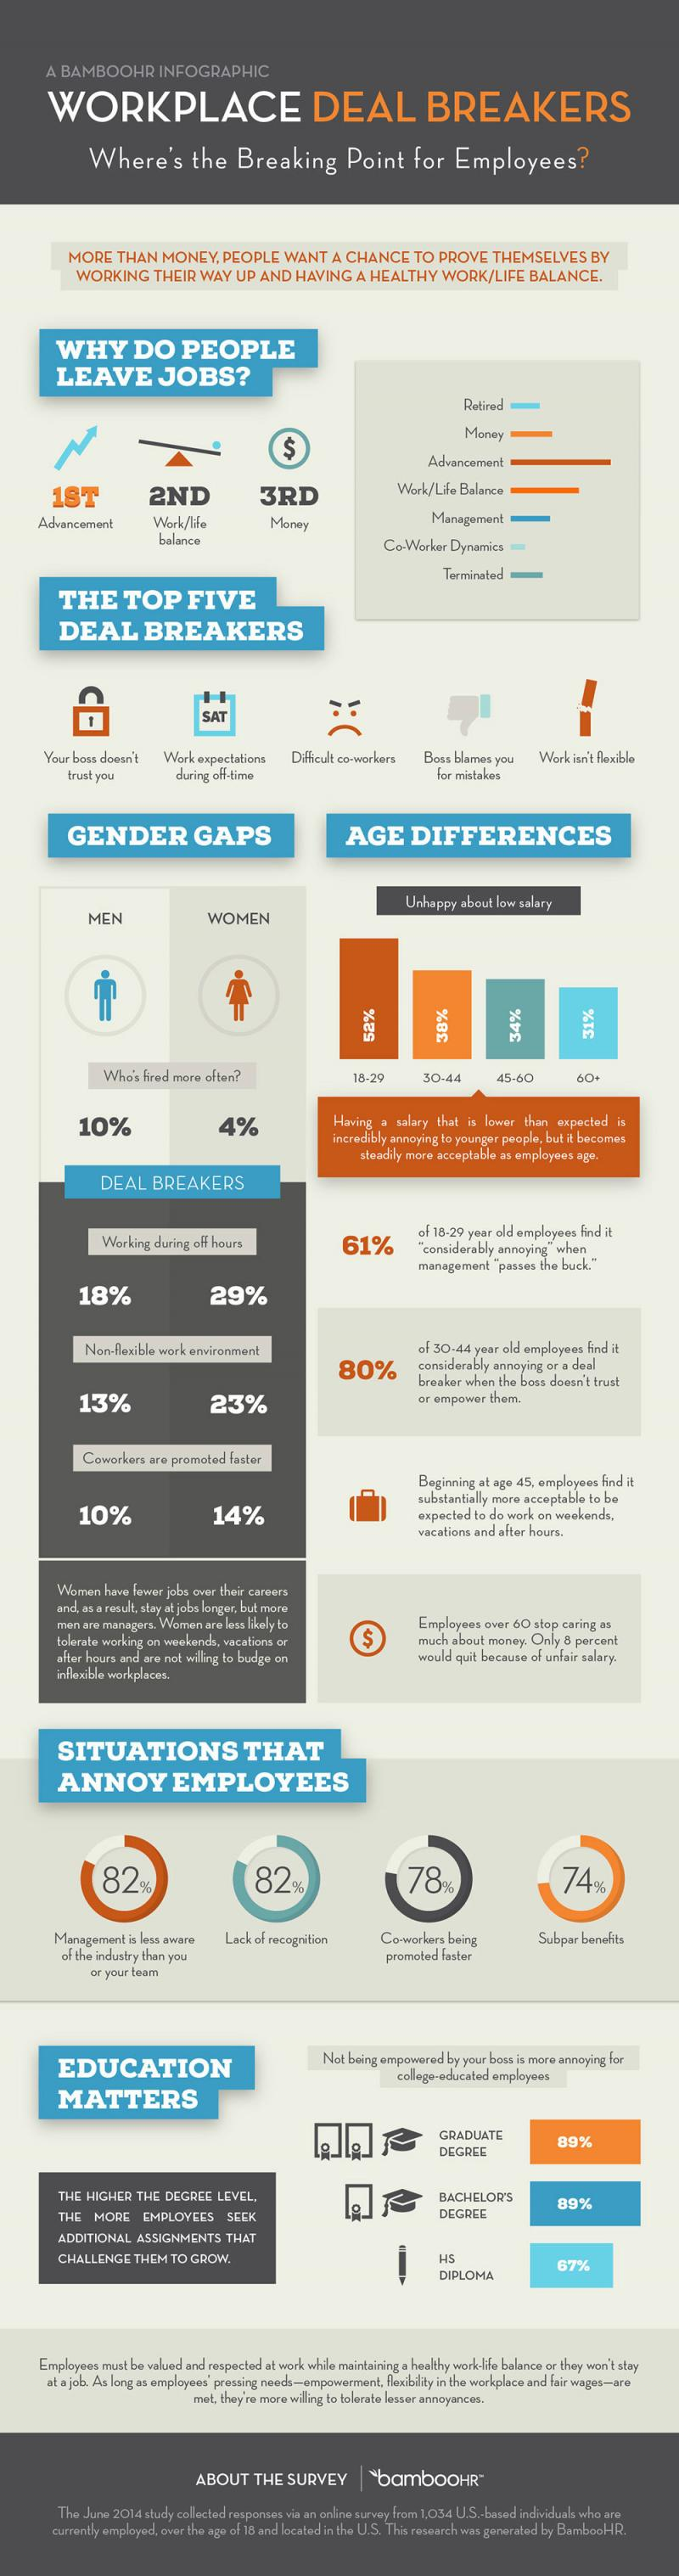 Top Workplace Deal Breakers You Should Know About #Infographic #HR #Jobs